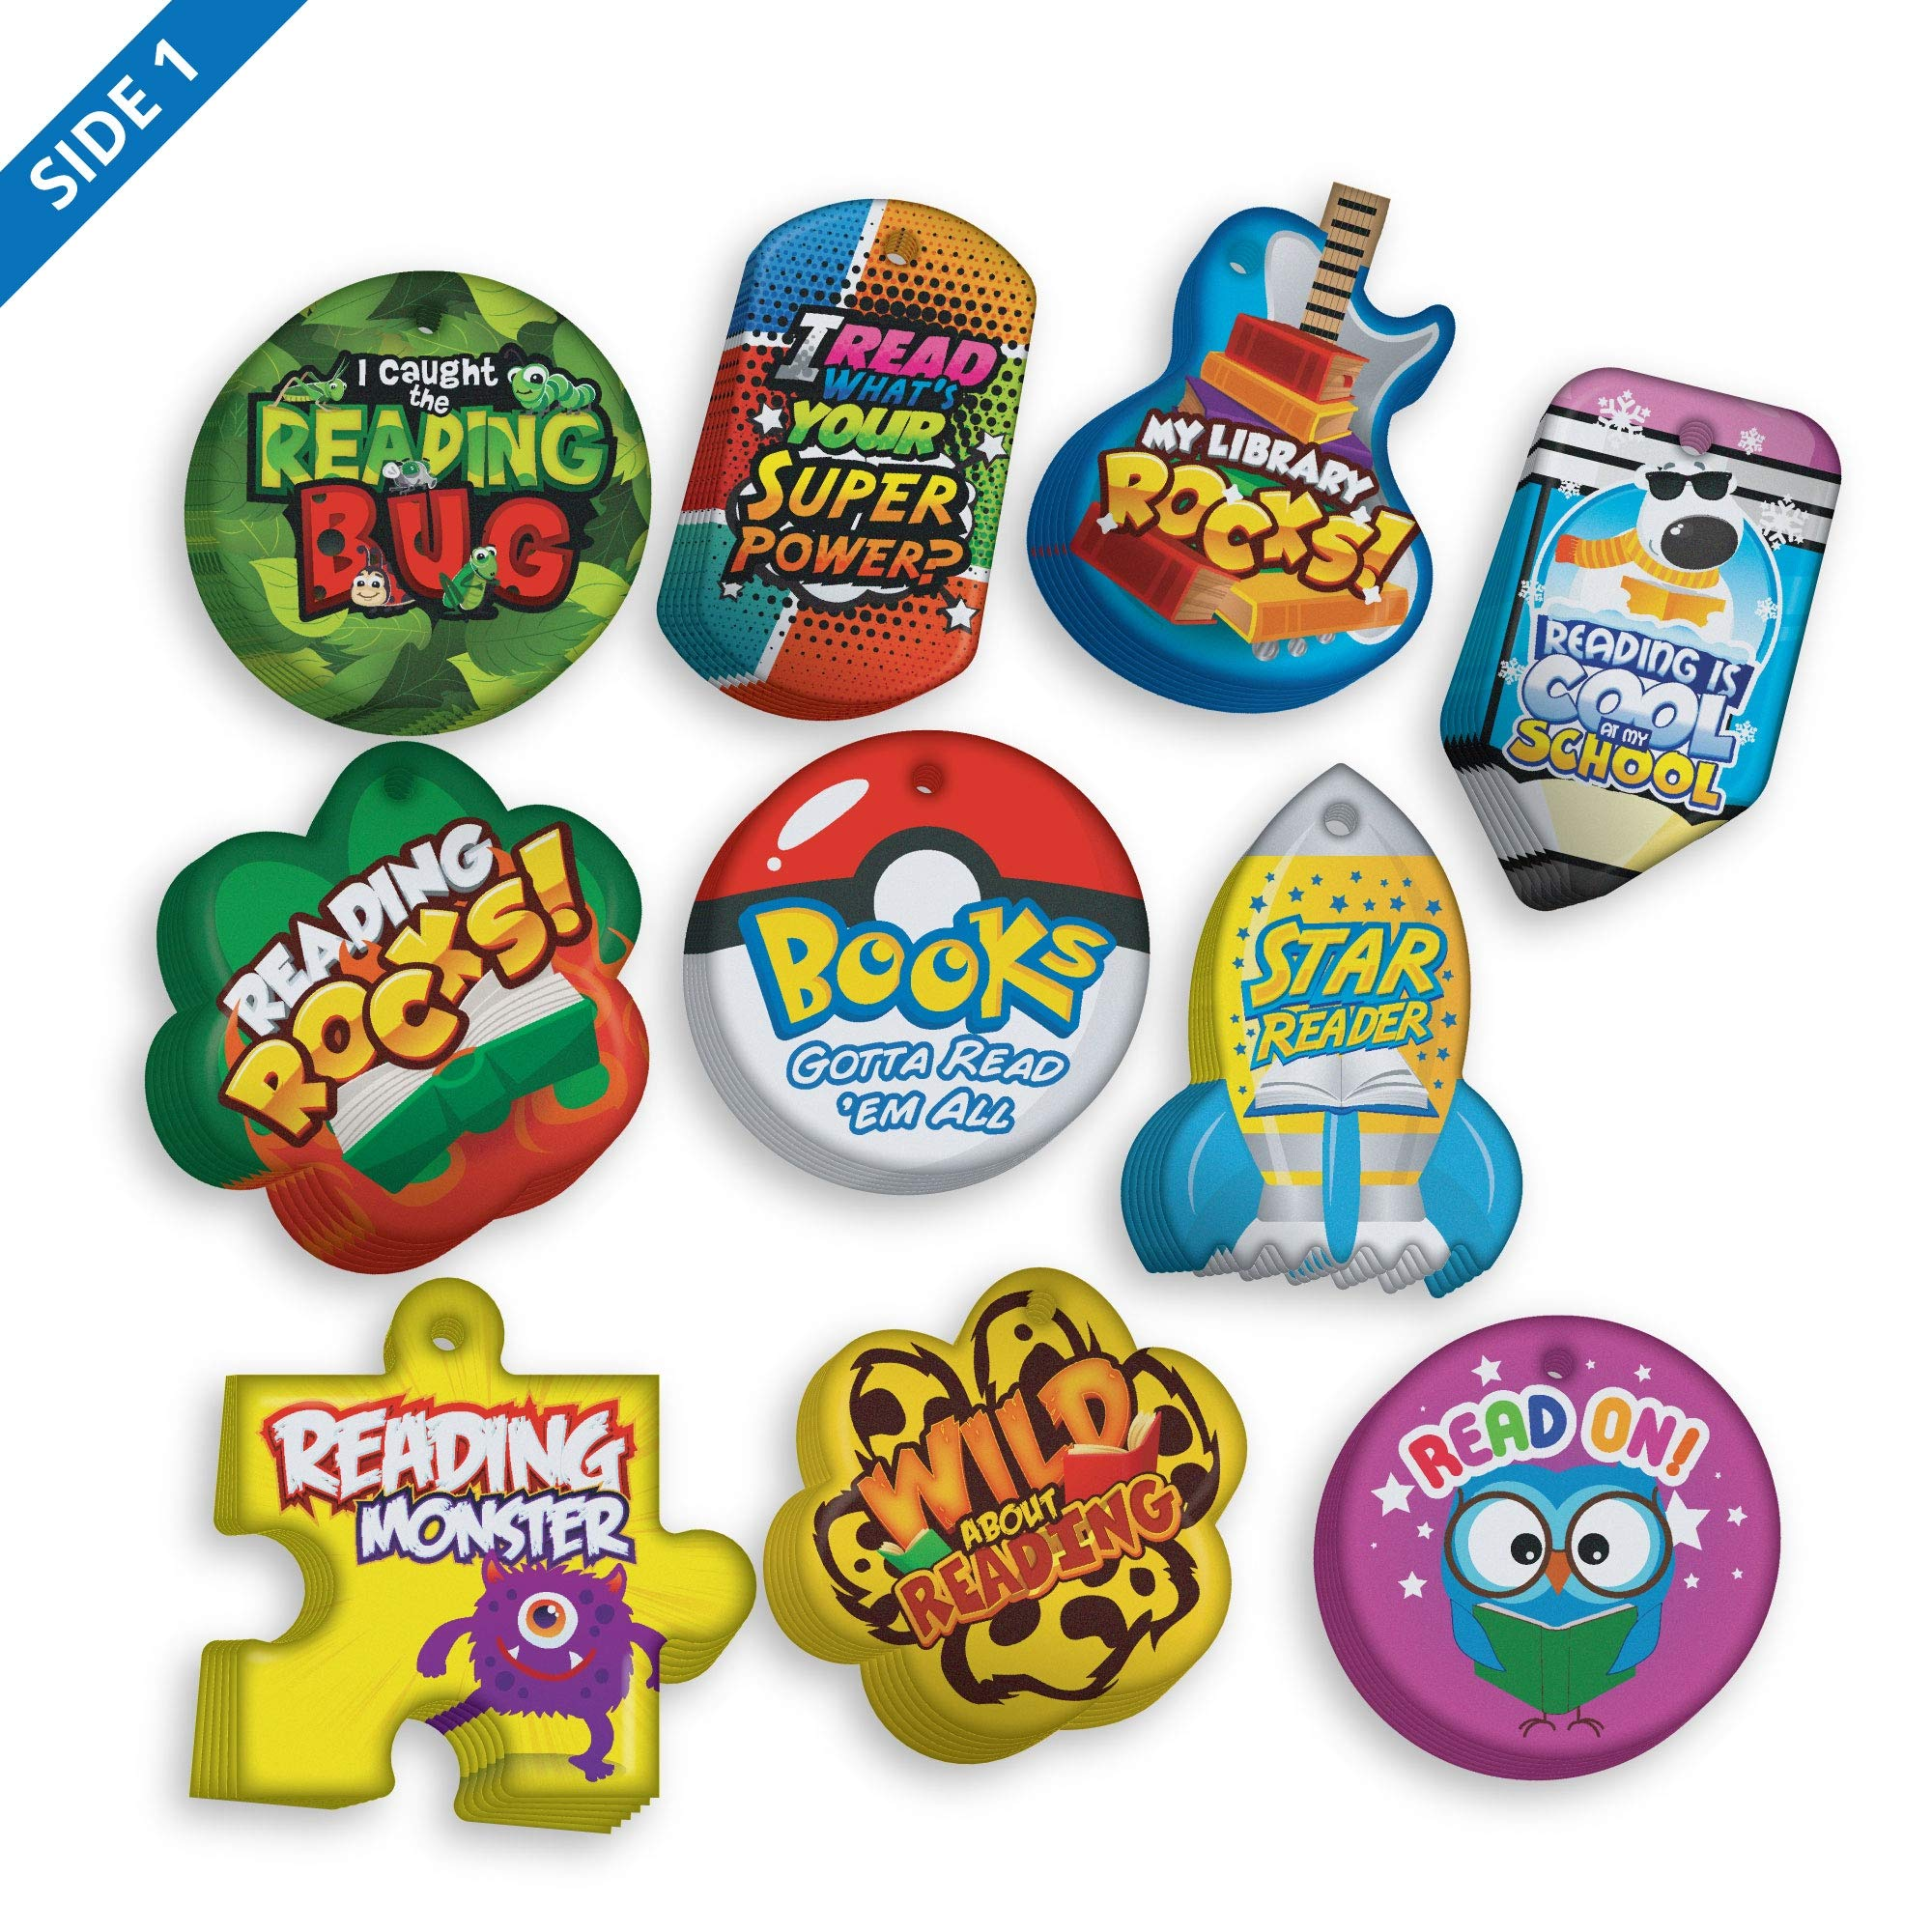 Encourage and Build Young Readers Brag Tag Value Pack 2: 500 Tags (50 Tags for Each Shape) + 150 Chains